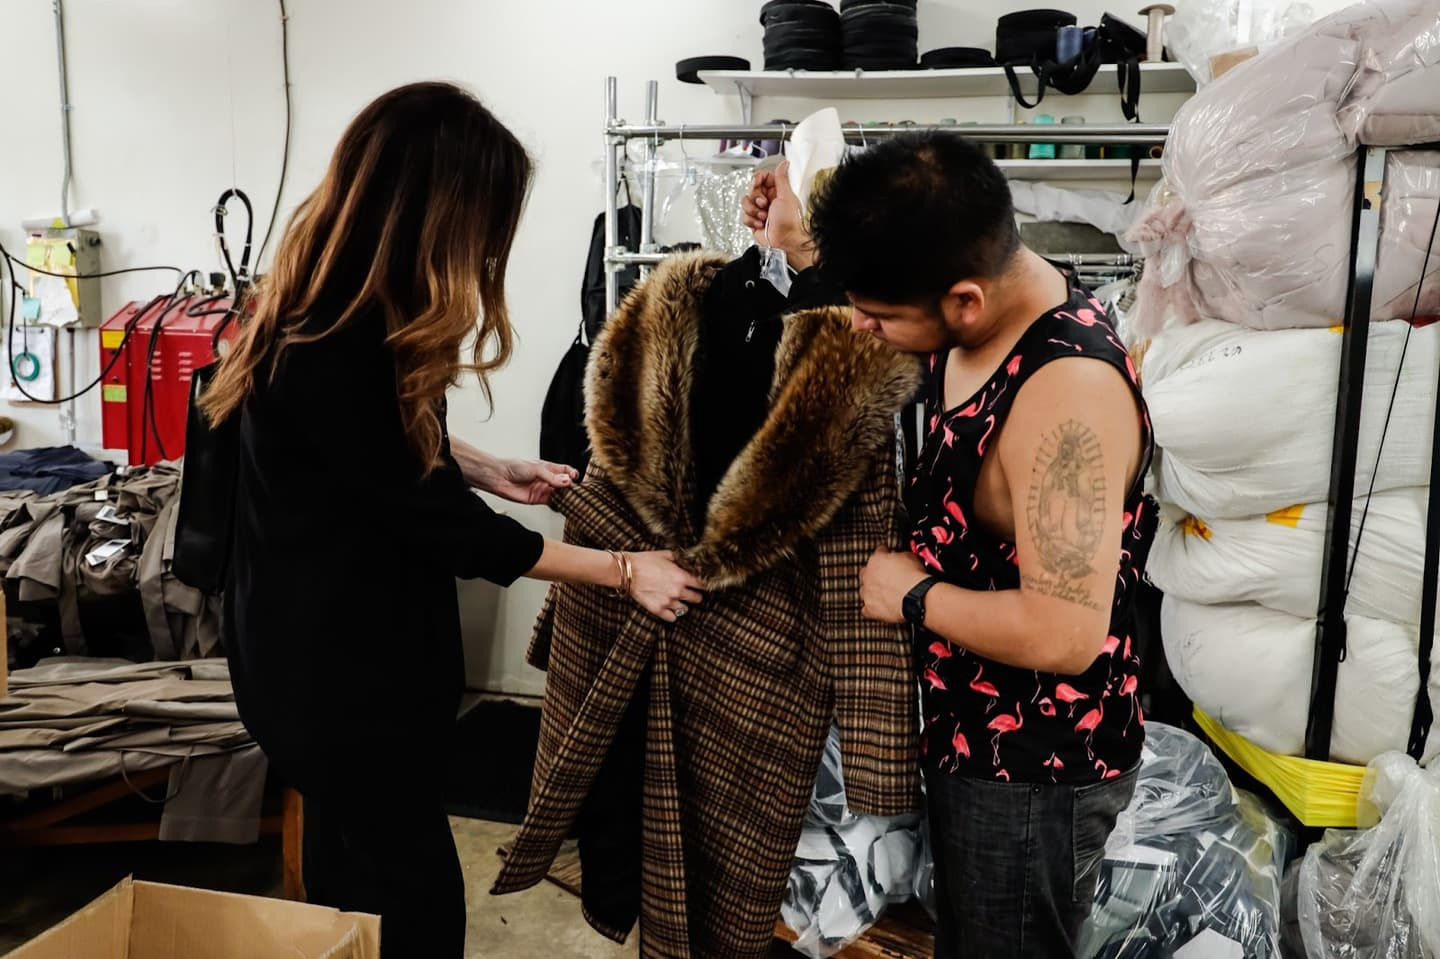 Two clothing designers examining sustainable fashion materials and fabric